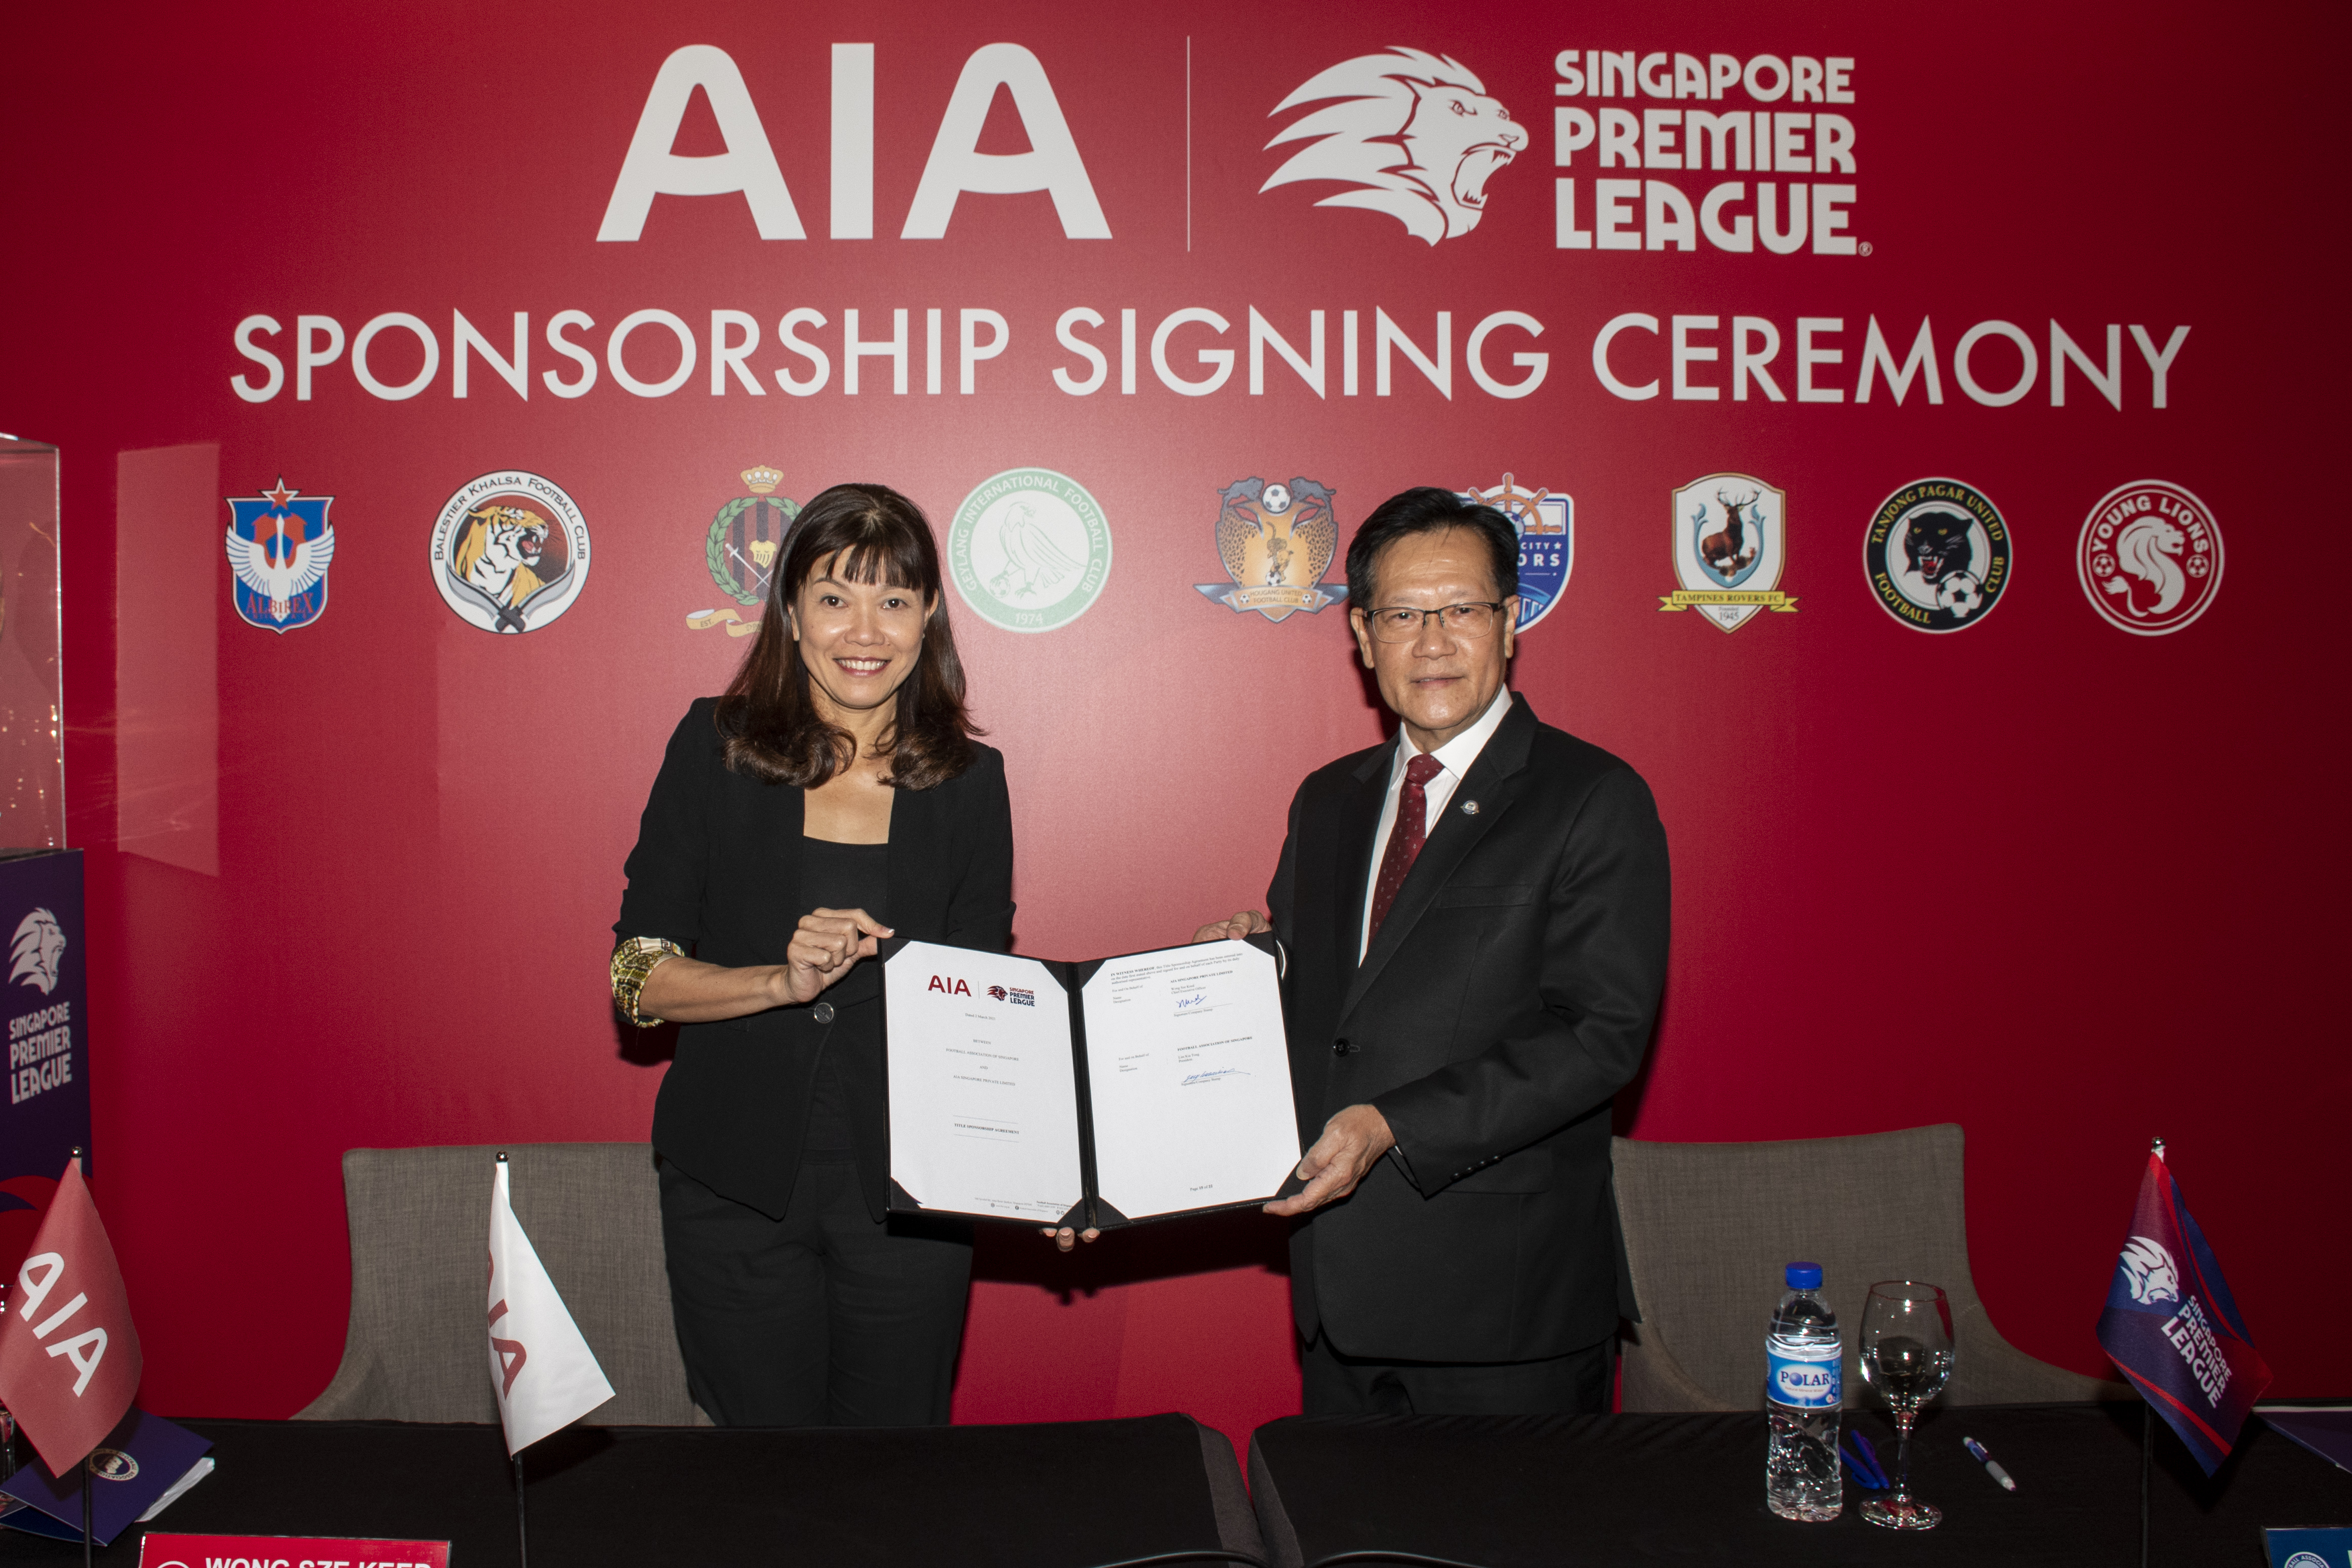 AIA Singapore extends title sponsorship of Singapore Premier League